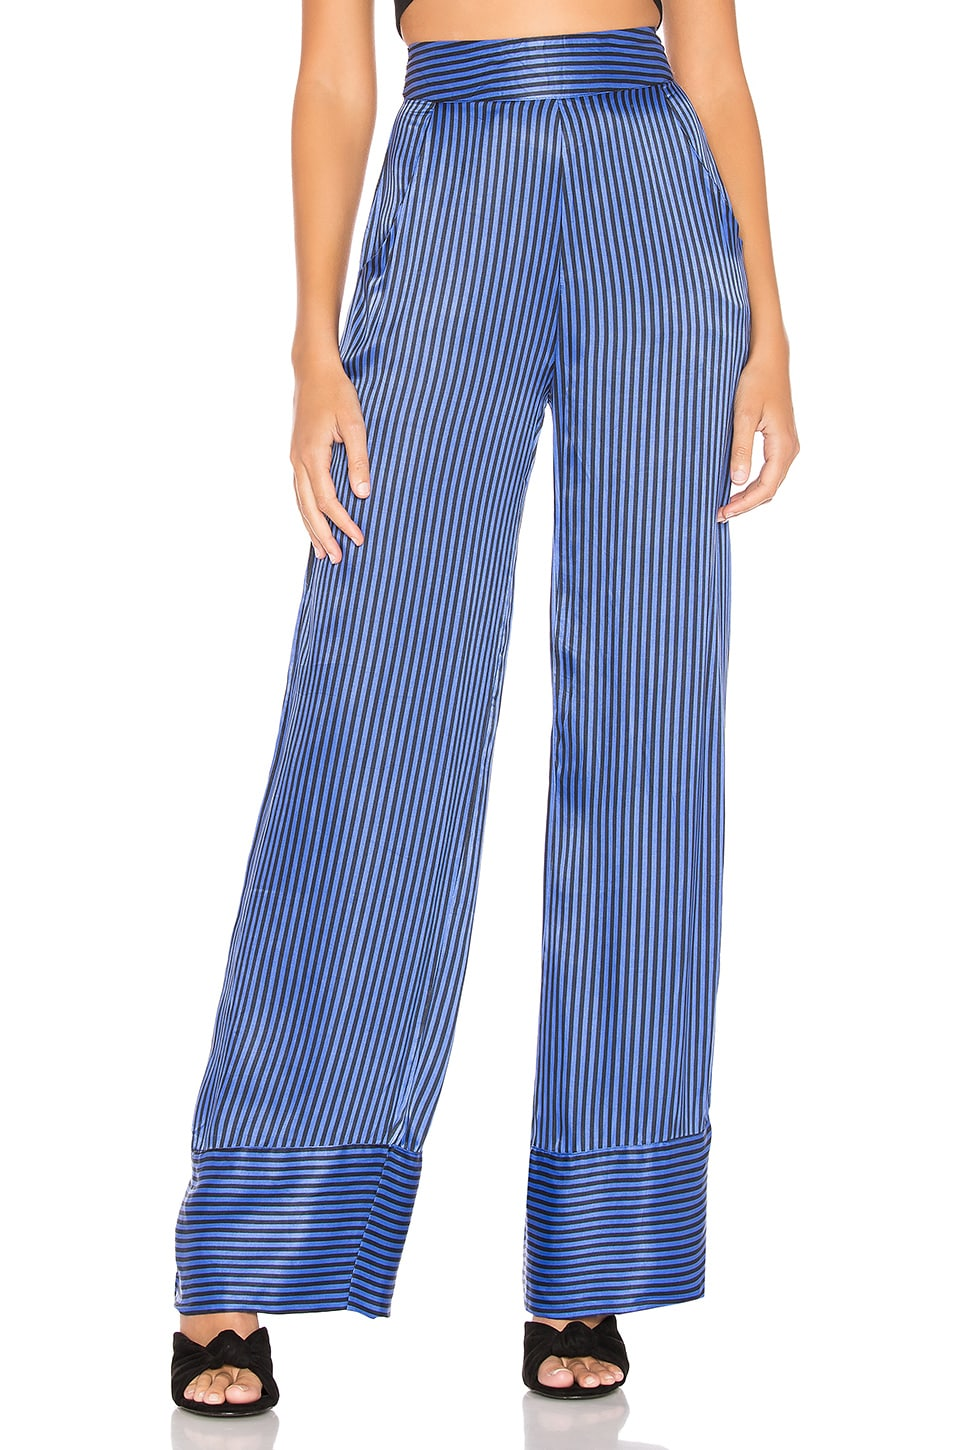 Lovers + Friends Meredith Pant in Marine Blue